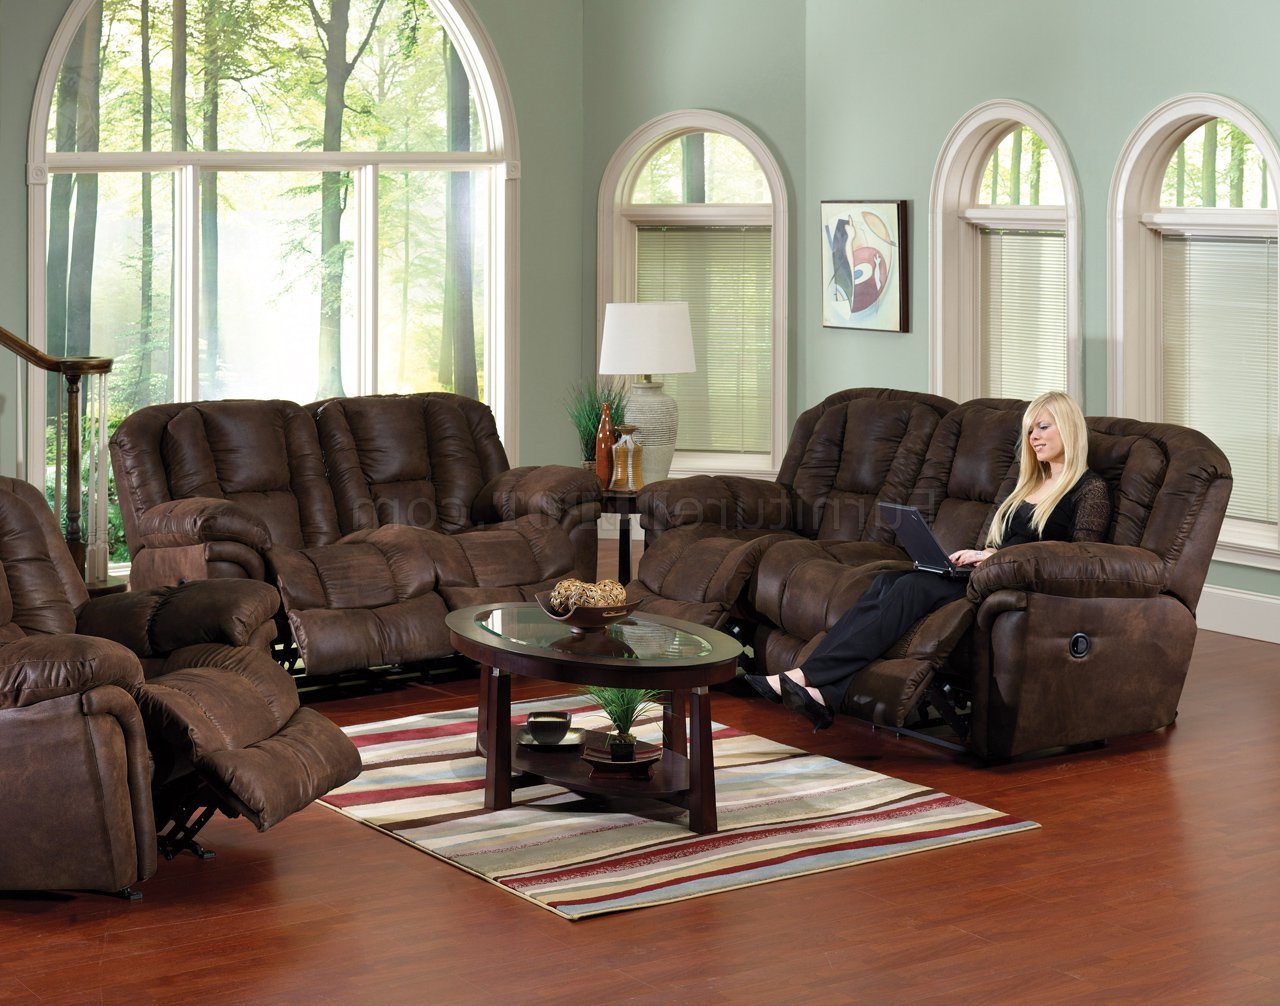 Sofa Loveseat And Chairs Intended For Famous Chocolate Faux Leather Contour Reclining Sofa & Loveseat Set (View 13 of 20)